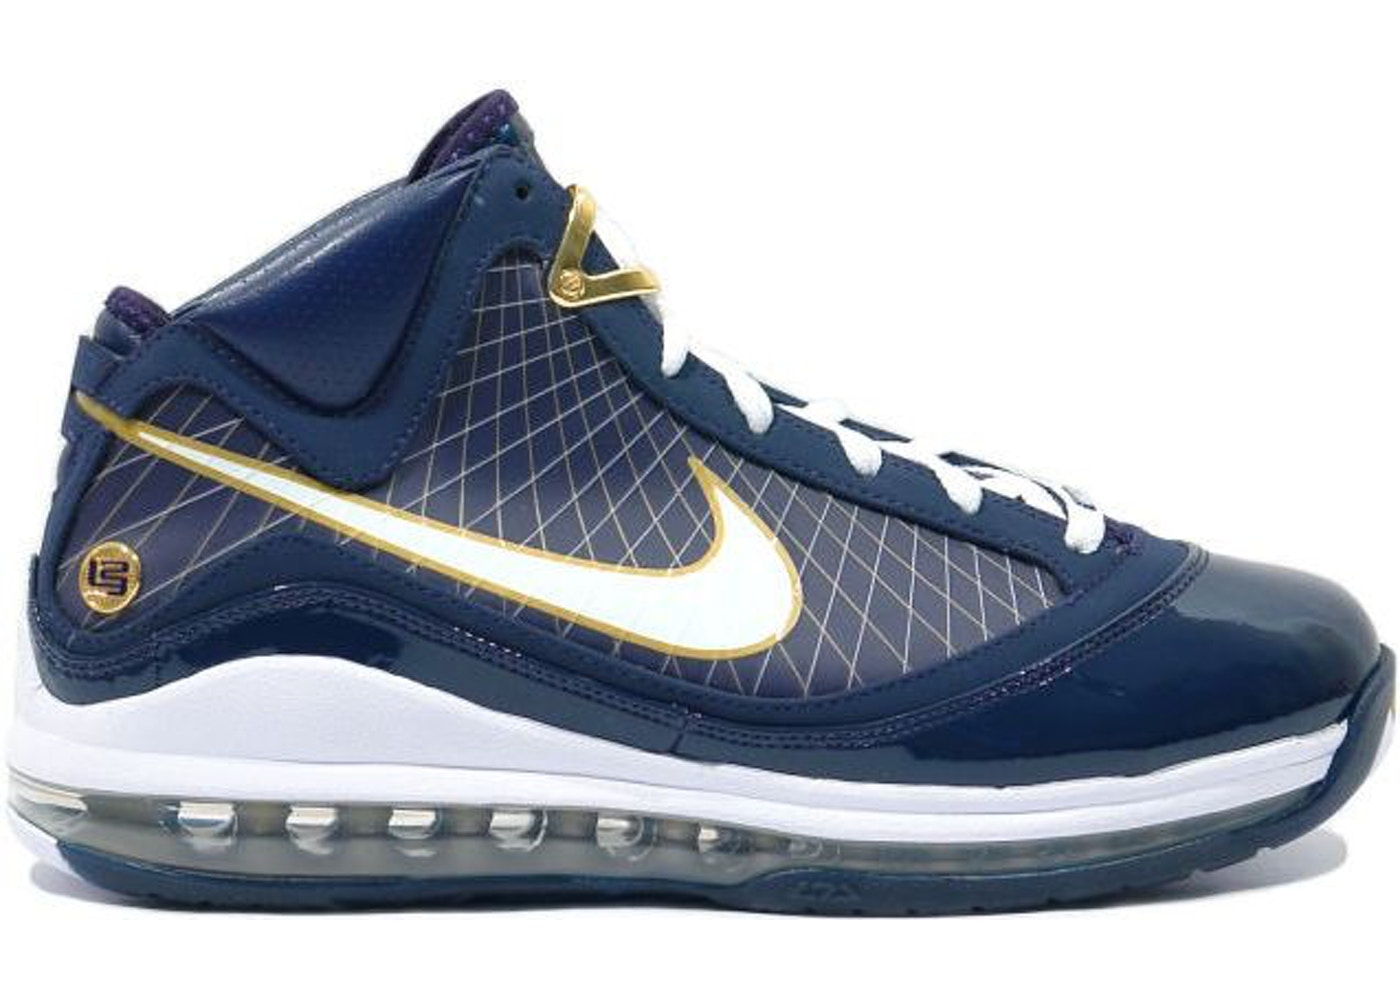 ナイキ NIKE レブロン スニーカー 【 LEBRON 7 UNIVERSITY OF AKRON MIDNIGHT NAVY WHITEMETALLIC GOLD 】 メンズ